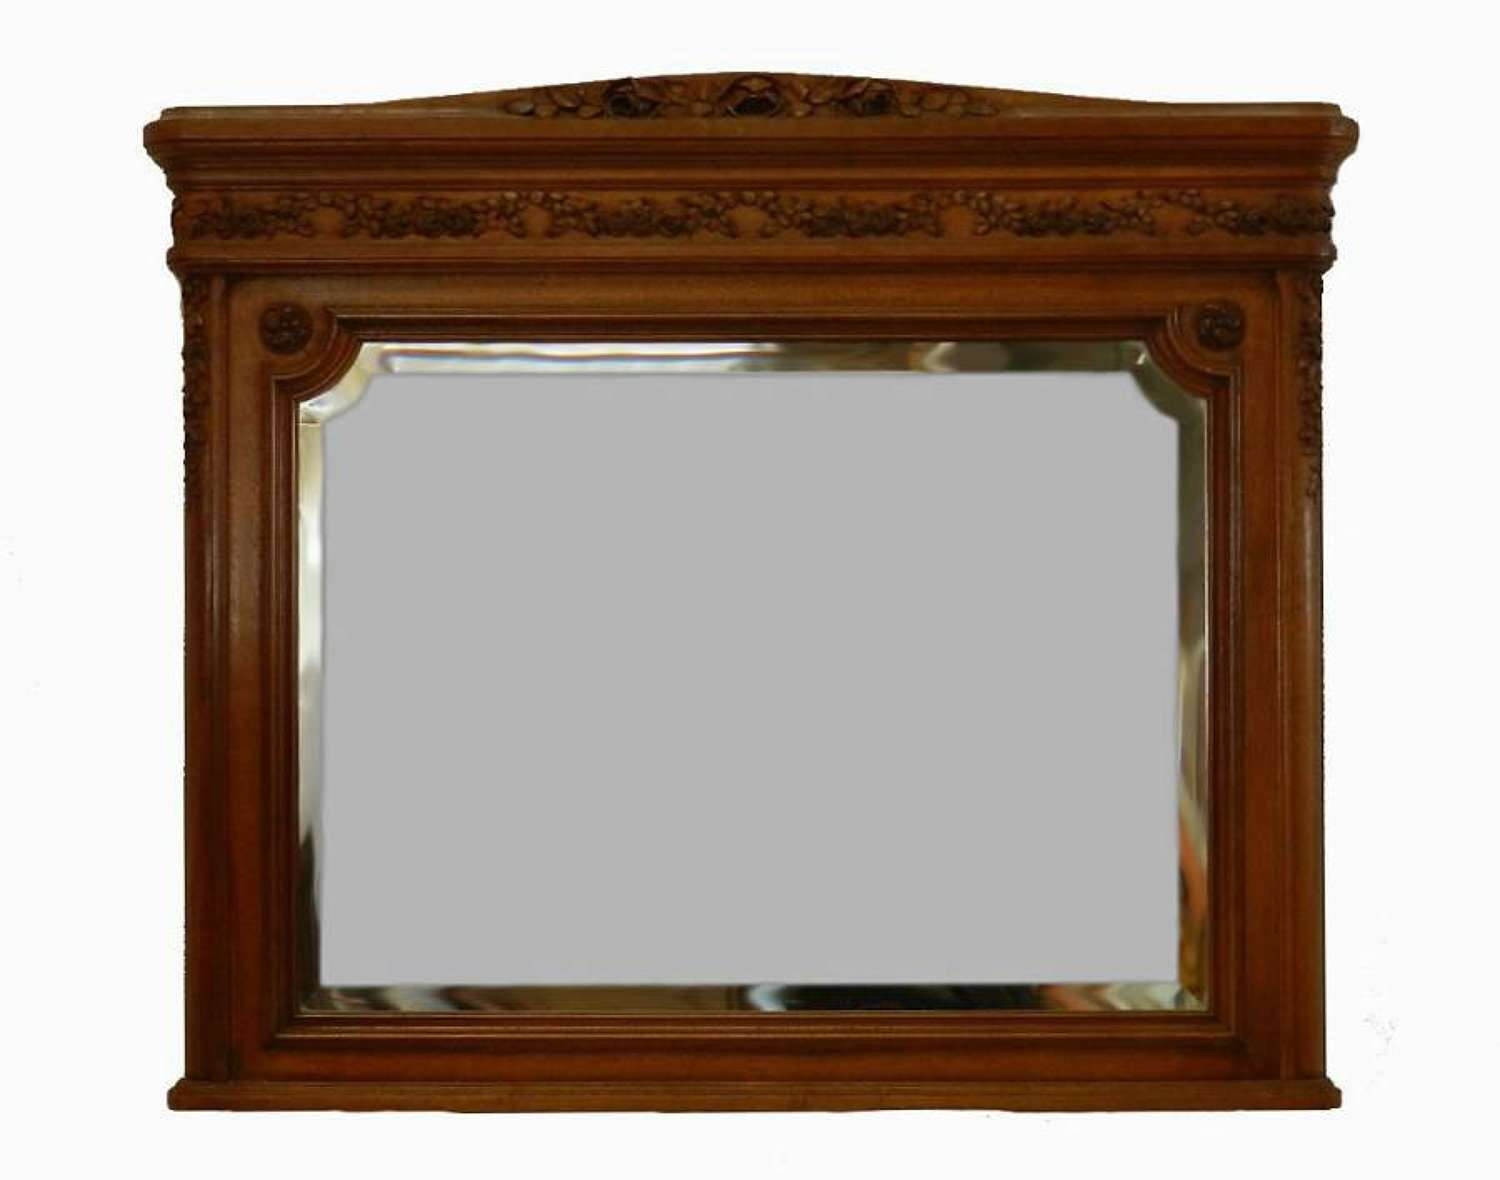 C19 French Wall Mirror Over mantle mantel